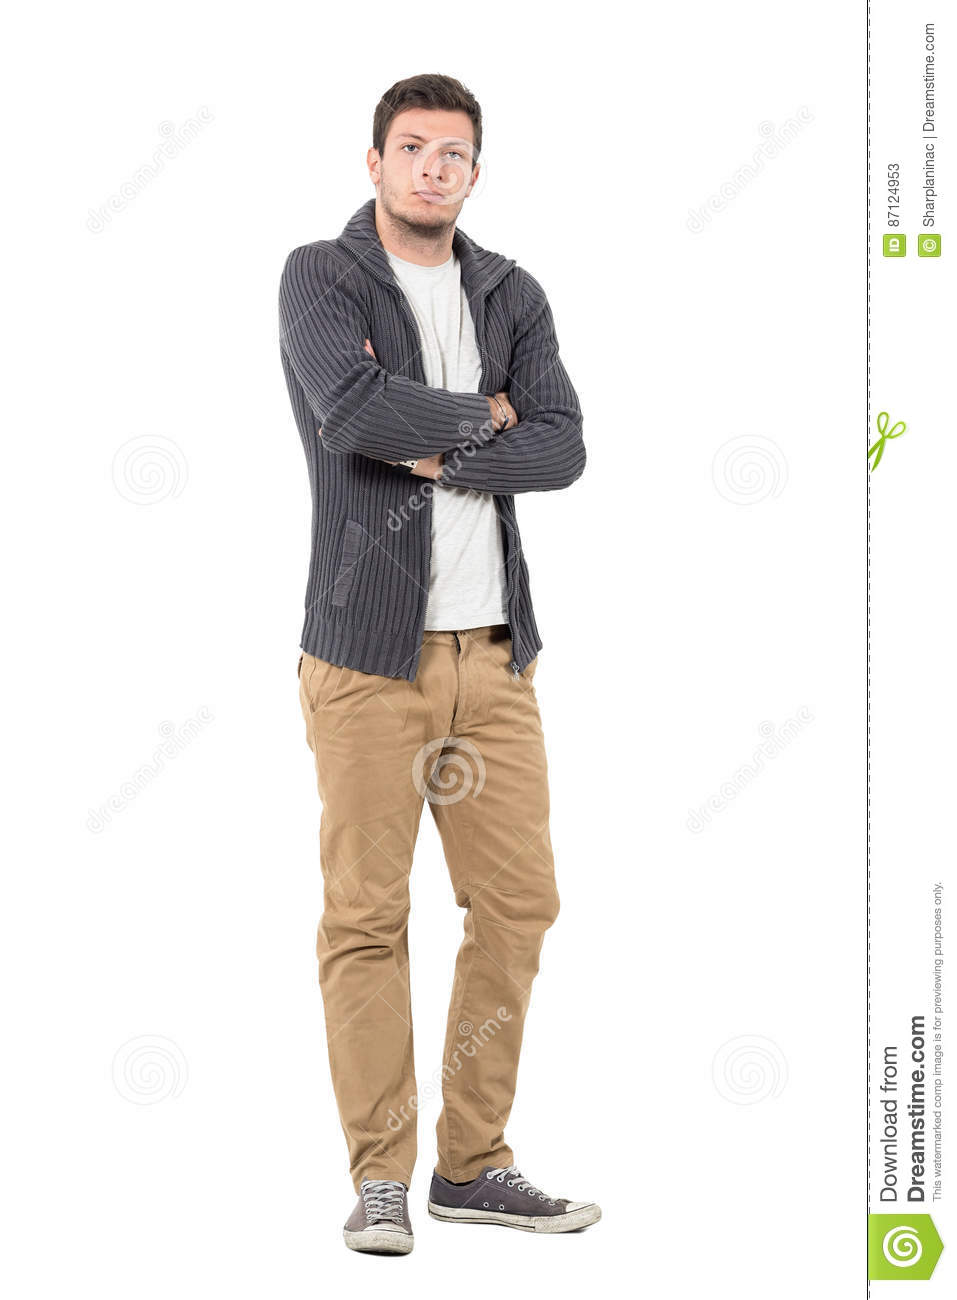 873043fb0b Serious young casual man in unzipped sweater with crossed arms looking at  camera.